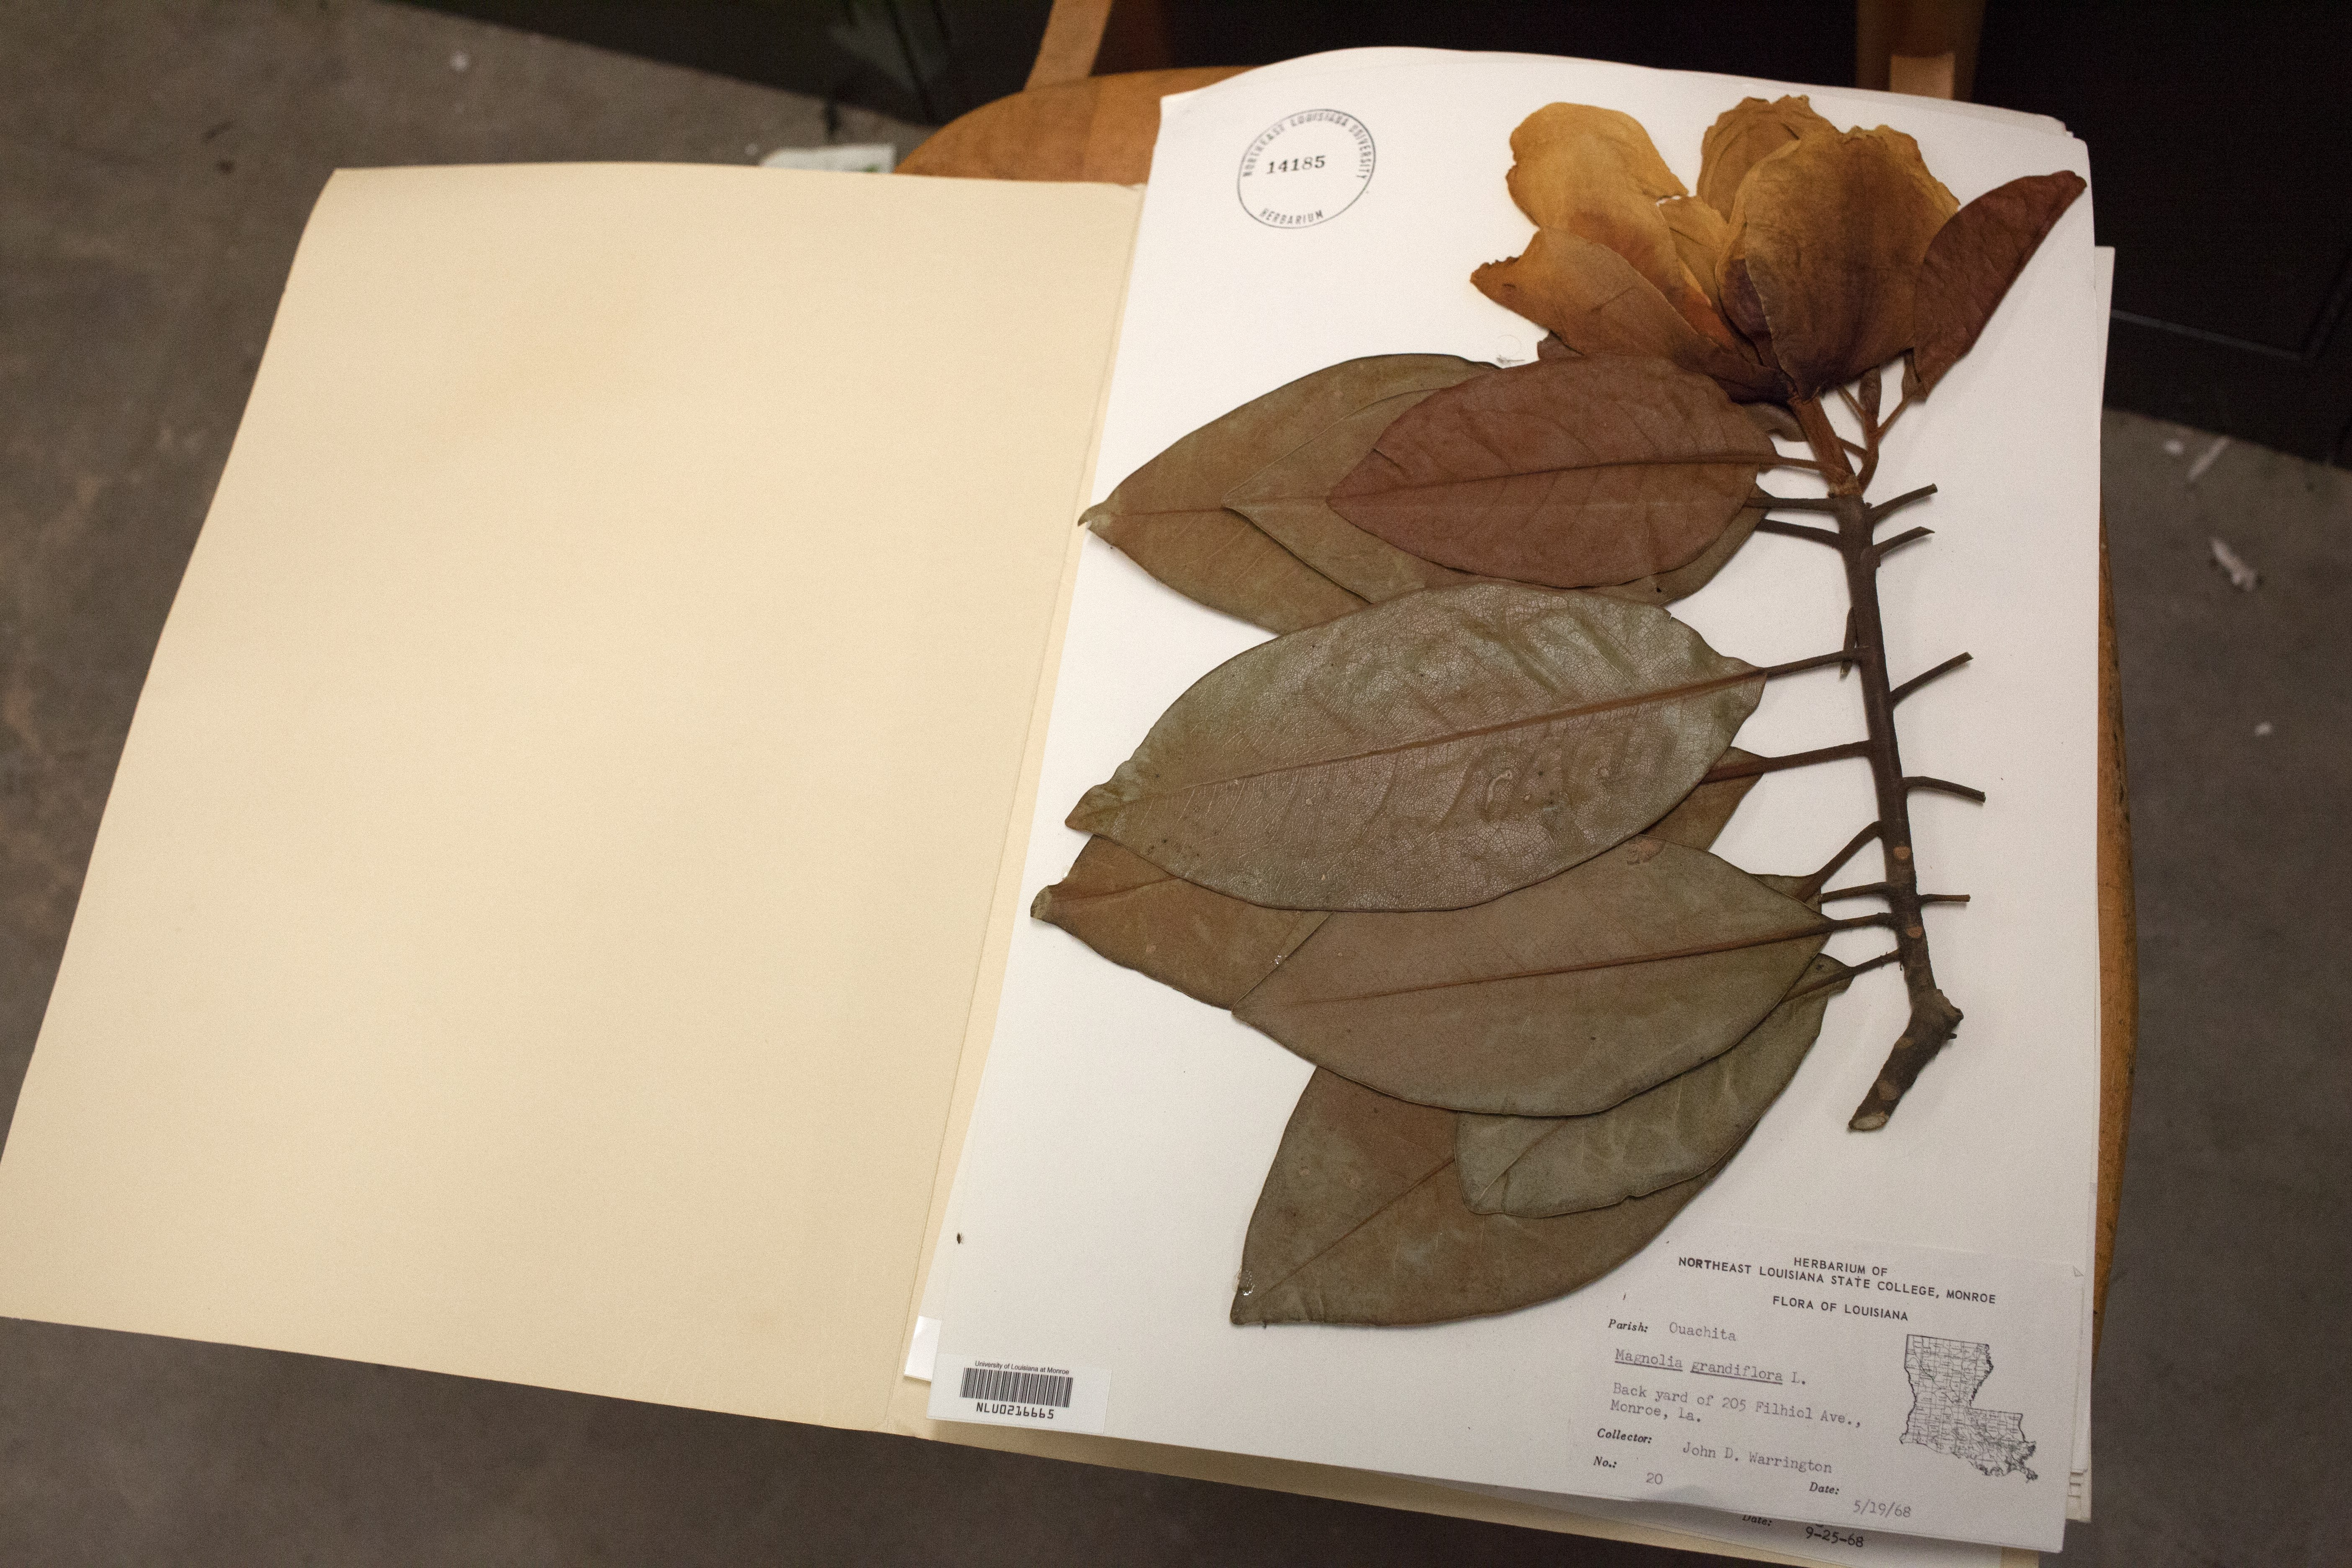 A locally collected magnolia specimen from the ULM herbarium. (Irina Zhorov/The Pulse)